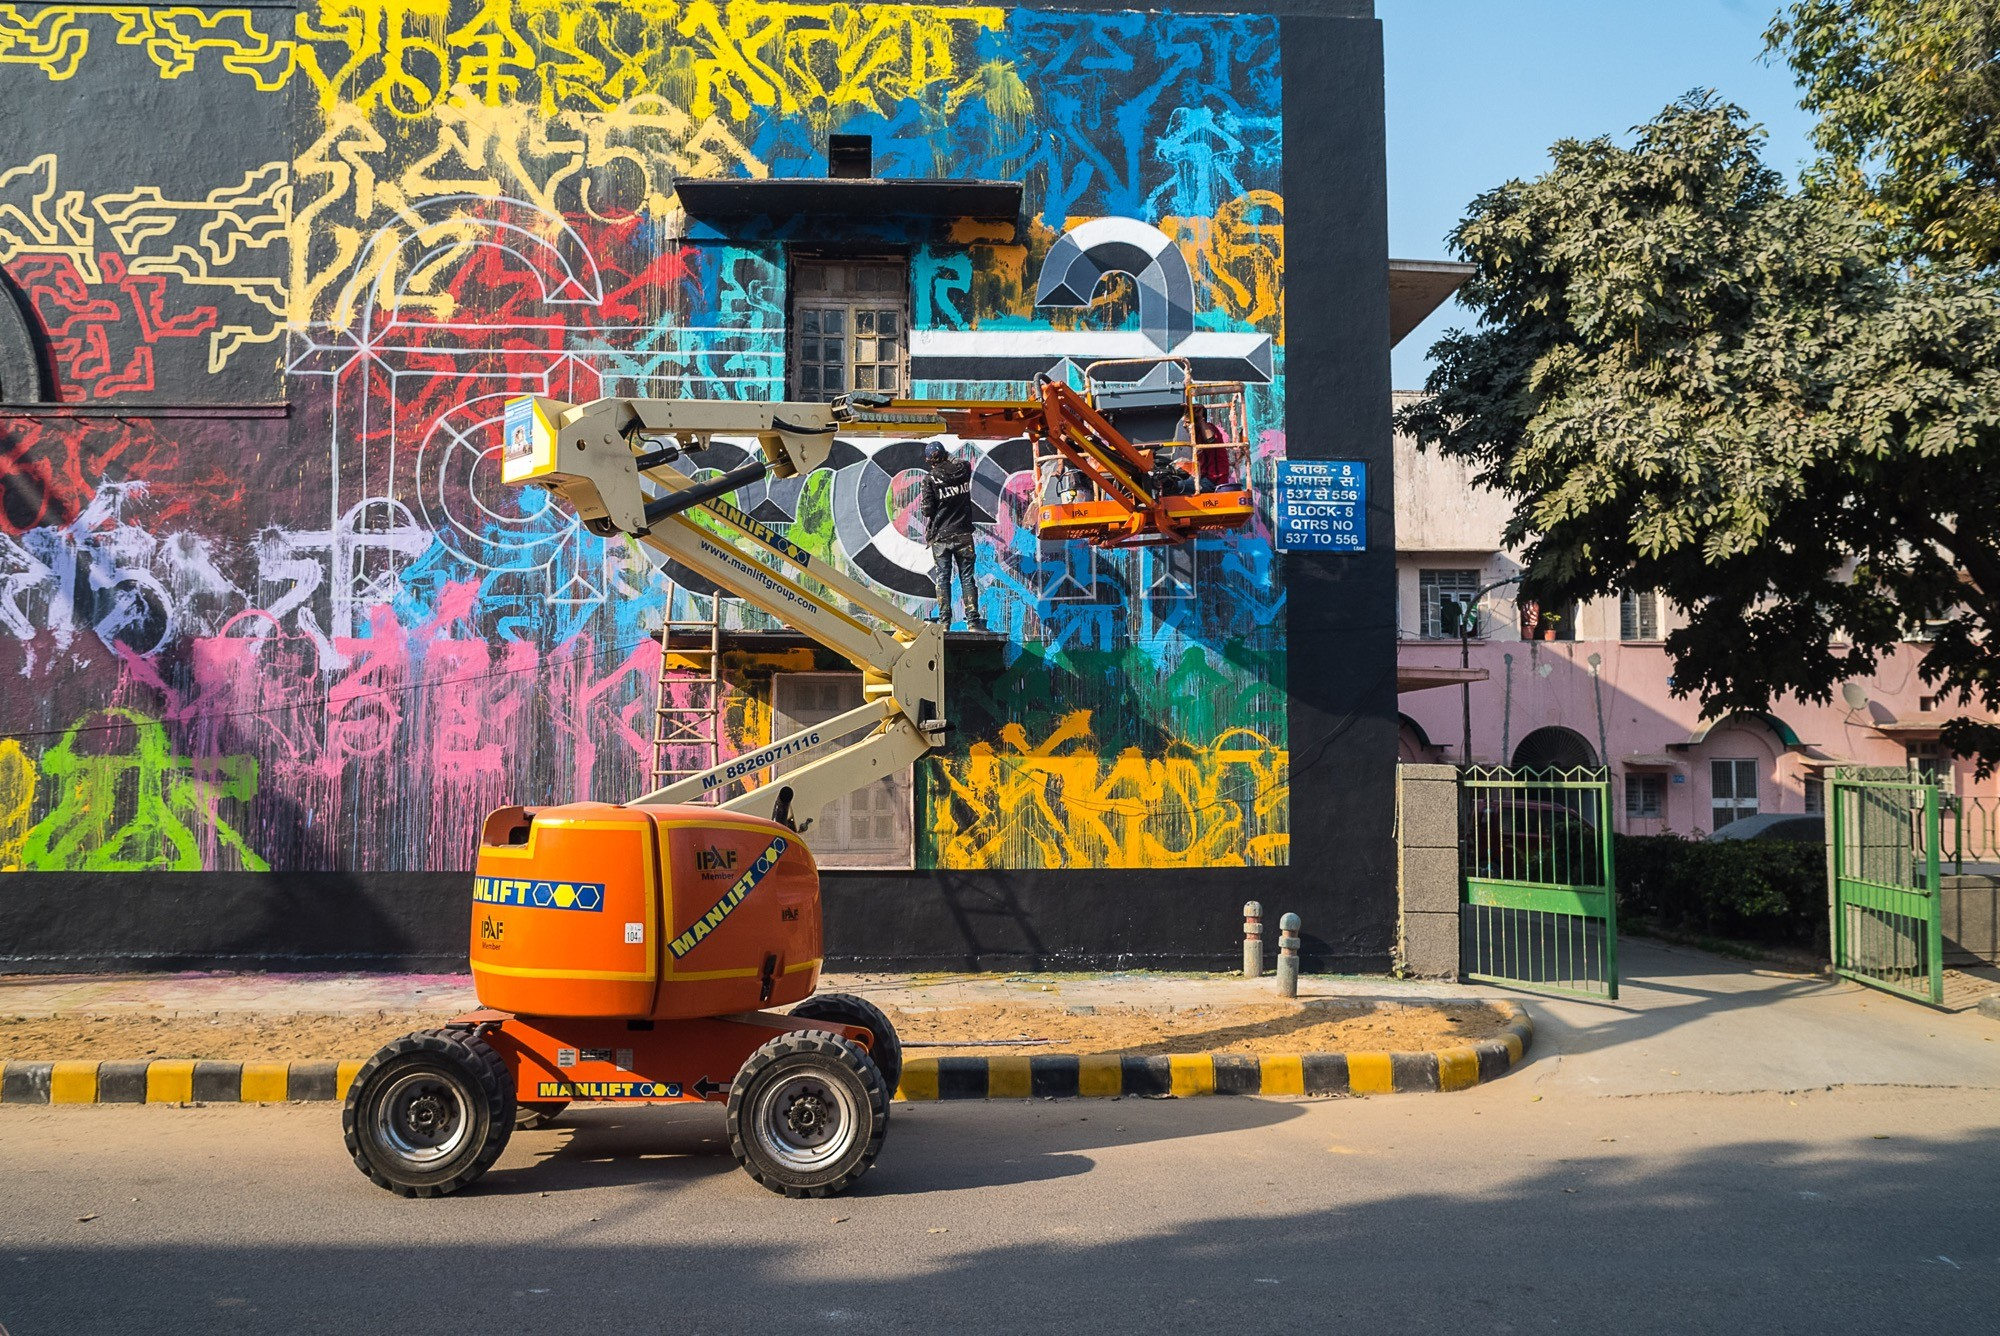 lekandsowat_lodhi art district_photo by naman saraiya (3 of 4)